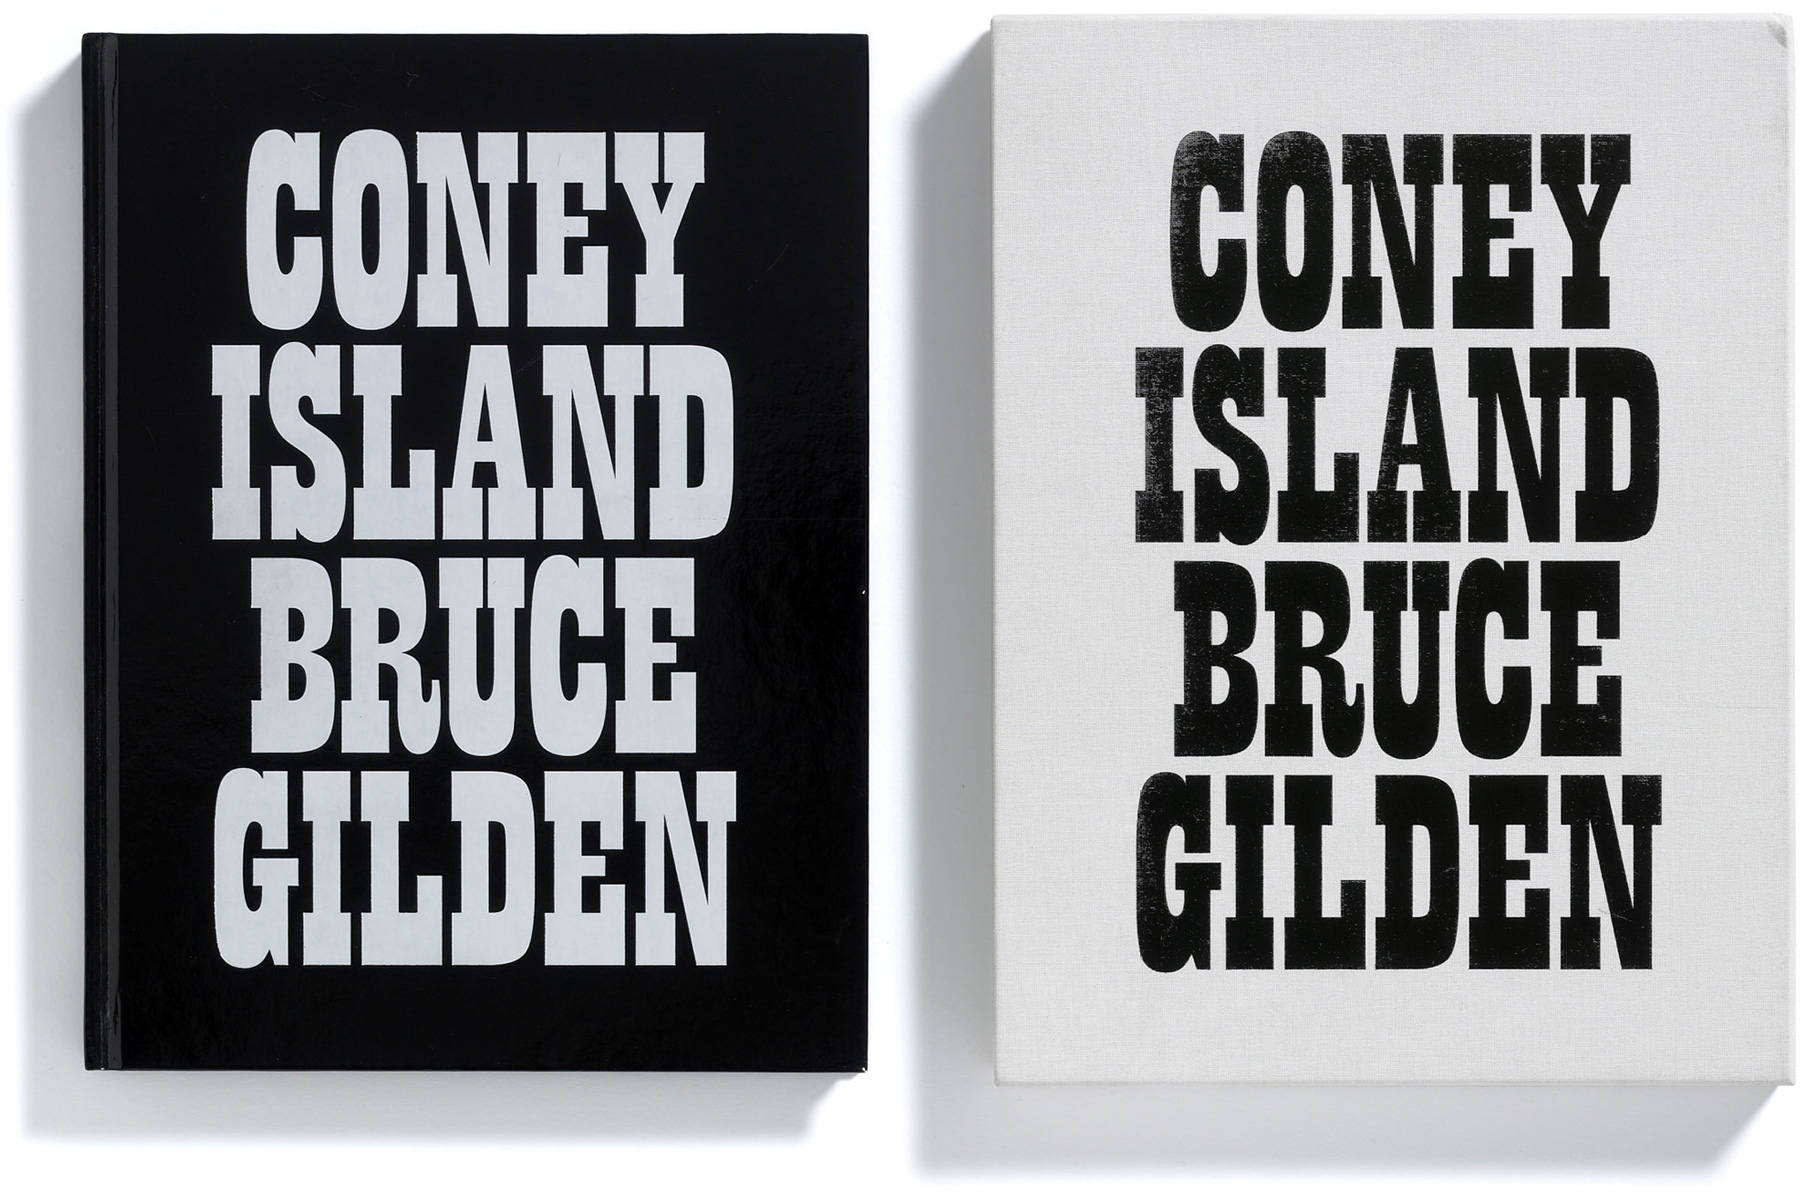 Browns Editions, Browns Editions Publishing, Browns Editions Books, Browns Editions Bruce Gilden, Browns Editions Coney Island, Browns Editions Bruce Gilden Coney Island